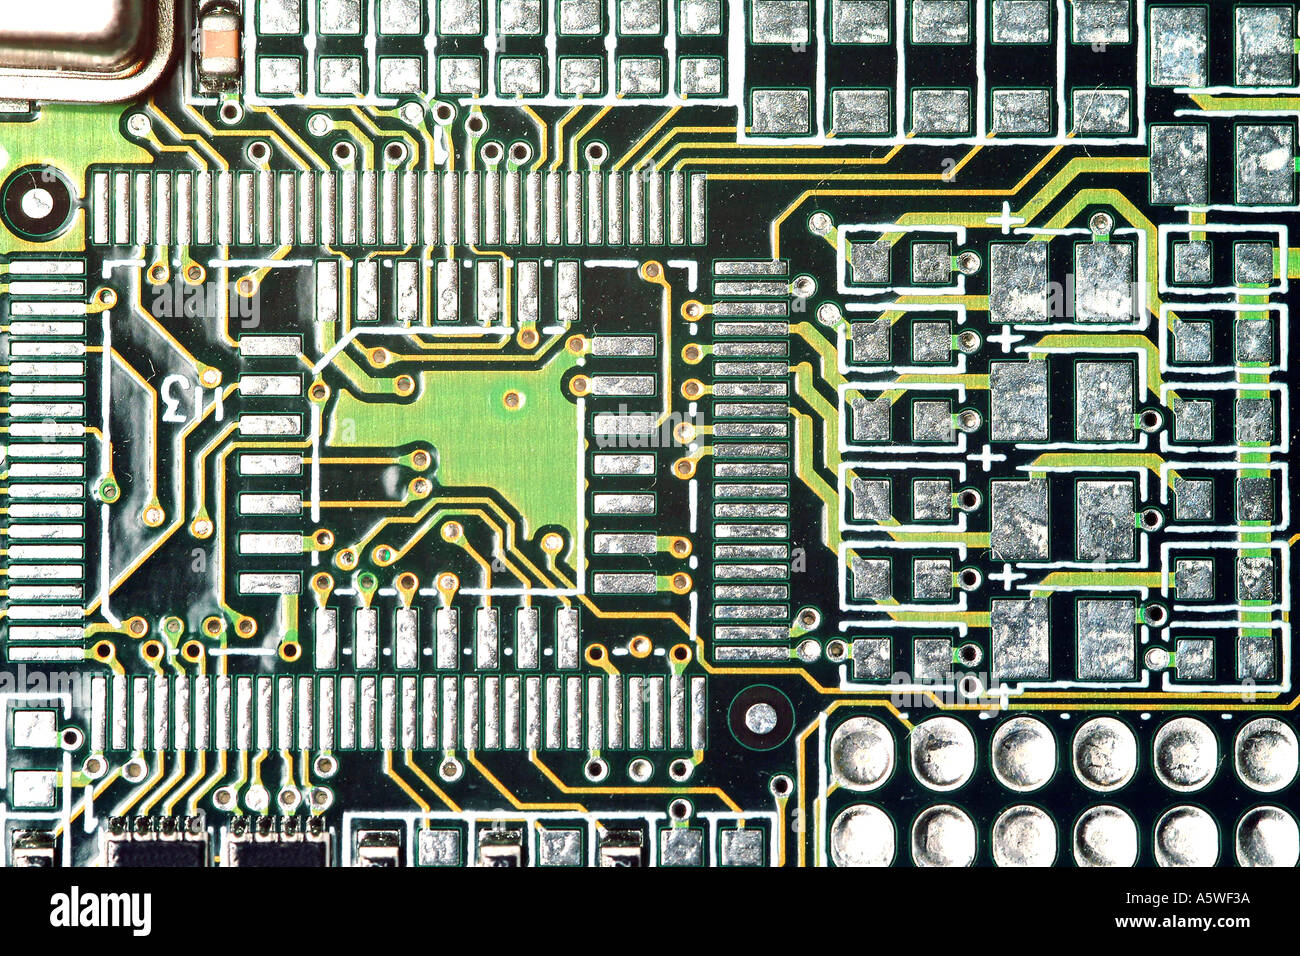 A close-up of the electrical circuitry on a computer graphics card ...